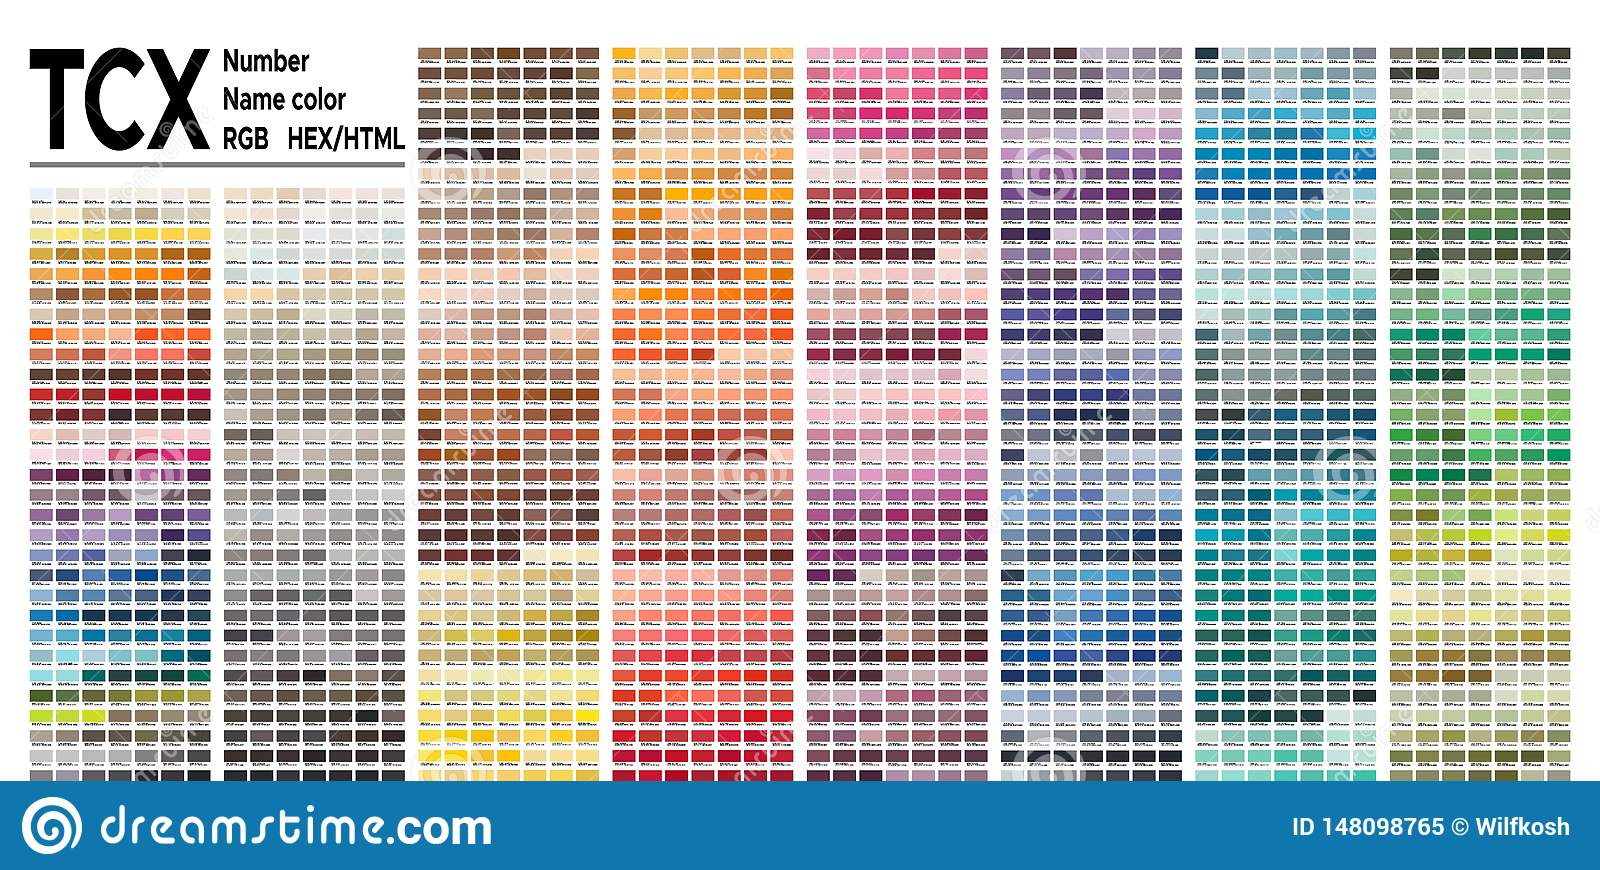 Color Table Pantone Fhi System Vector Color Palette With Number Named Color Swatches Chart Conform To Pantone Rgb Html And Hex Stock Vector Illustration Of Digital Abstract 148098765